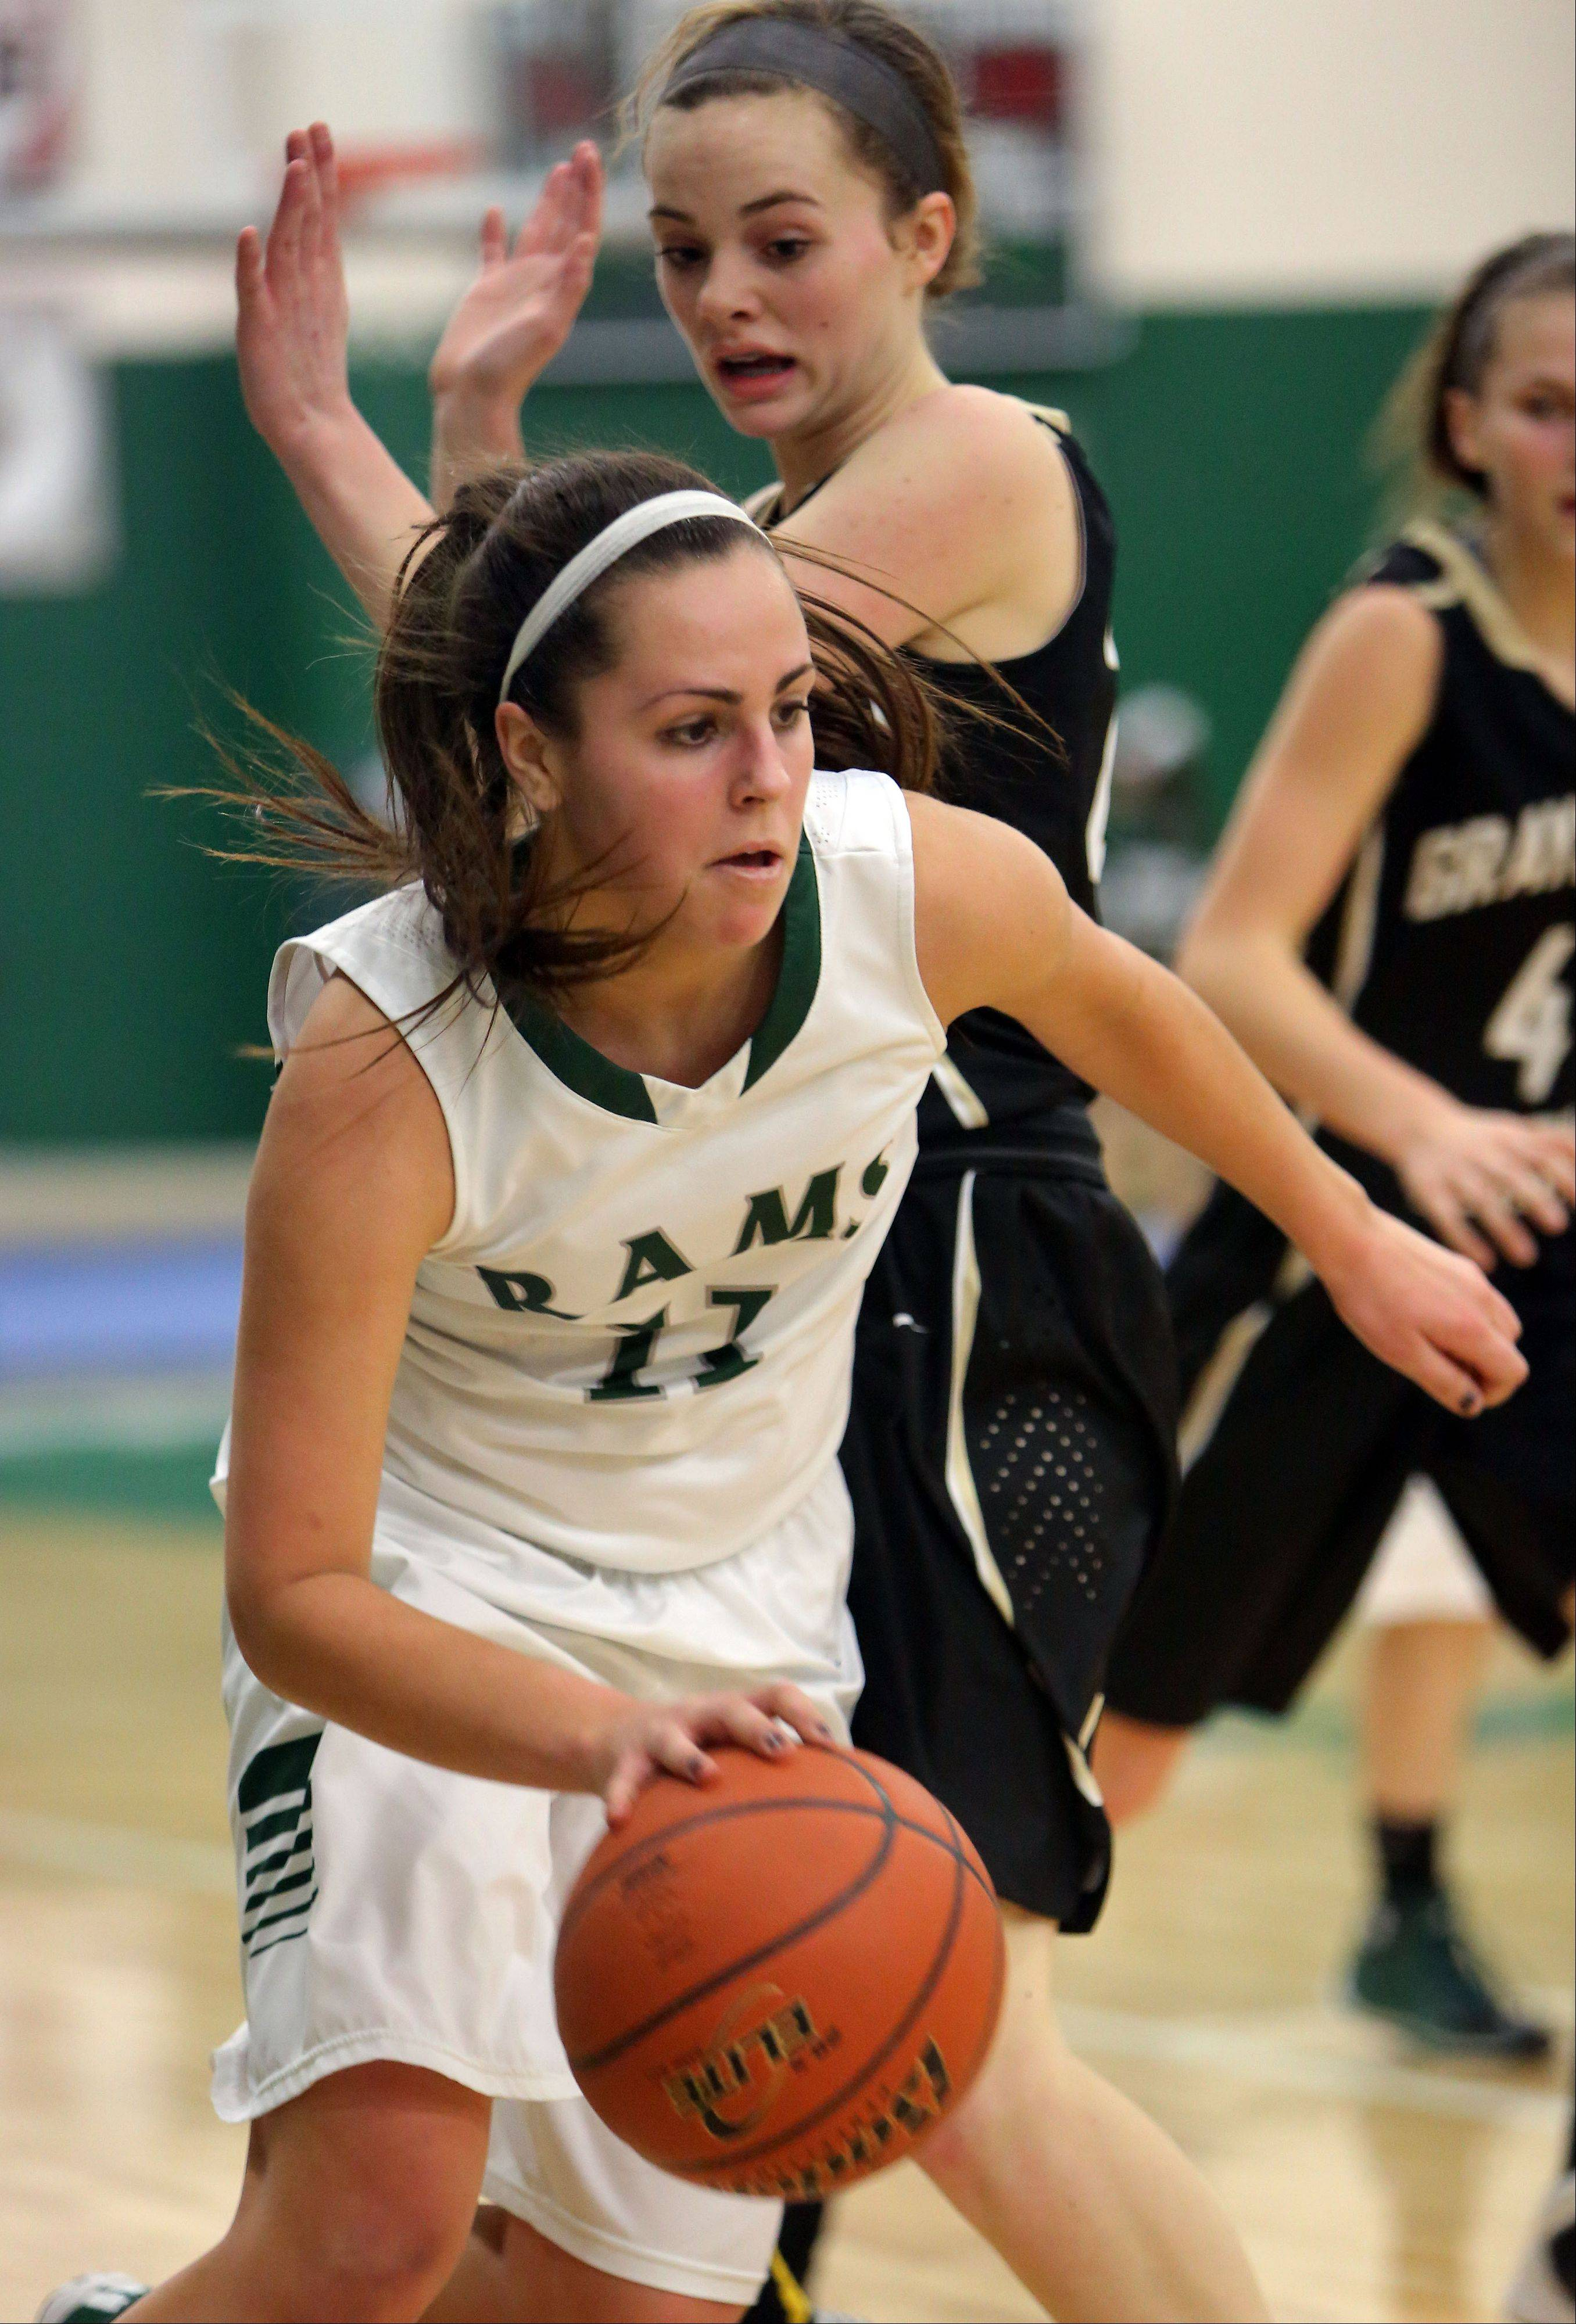 Grayslake Central's Carson Sparkman, left, drives past Grayslake North's Sidney Lovitsch Wednesday night at Grayslake Central.